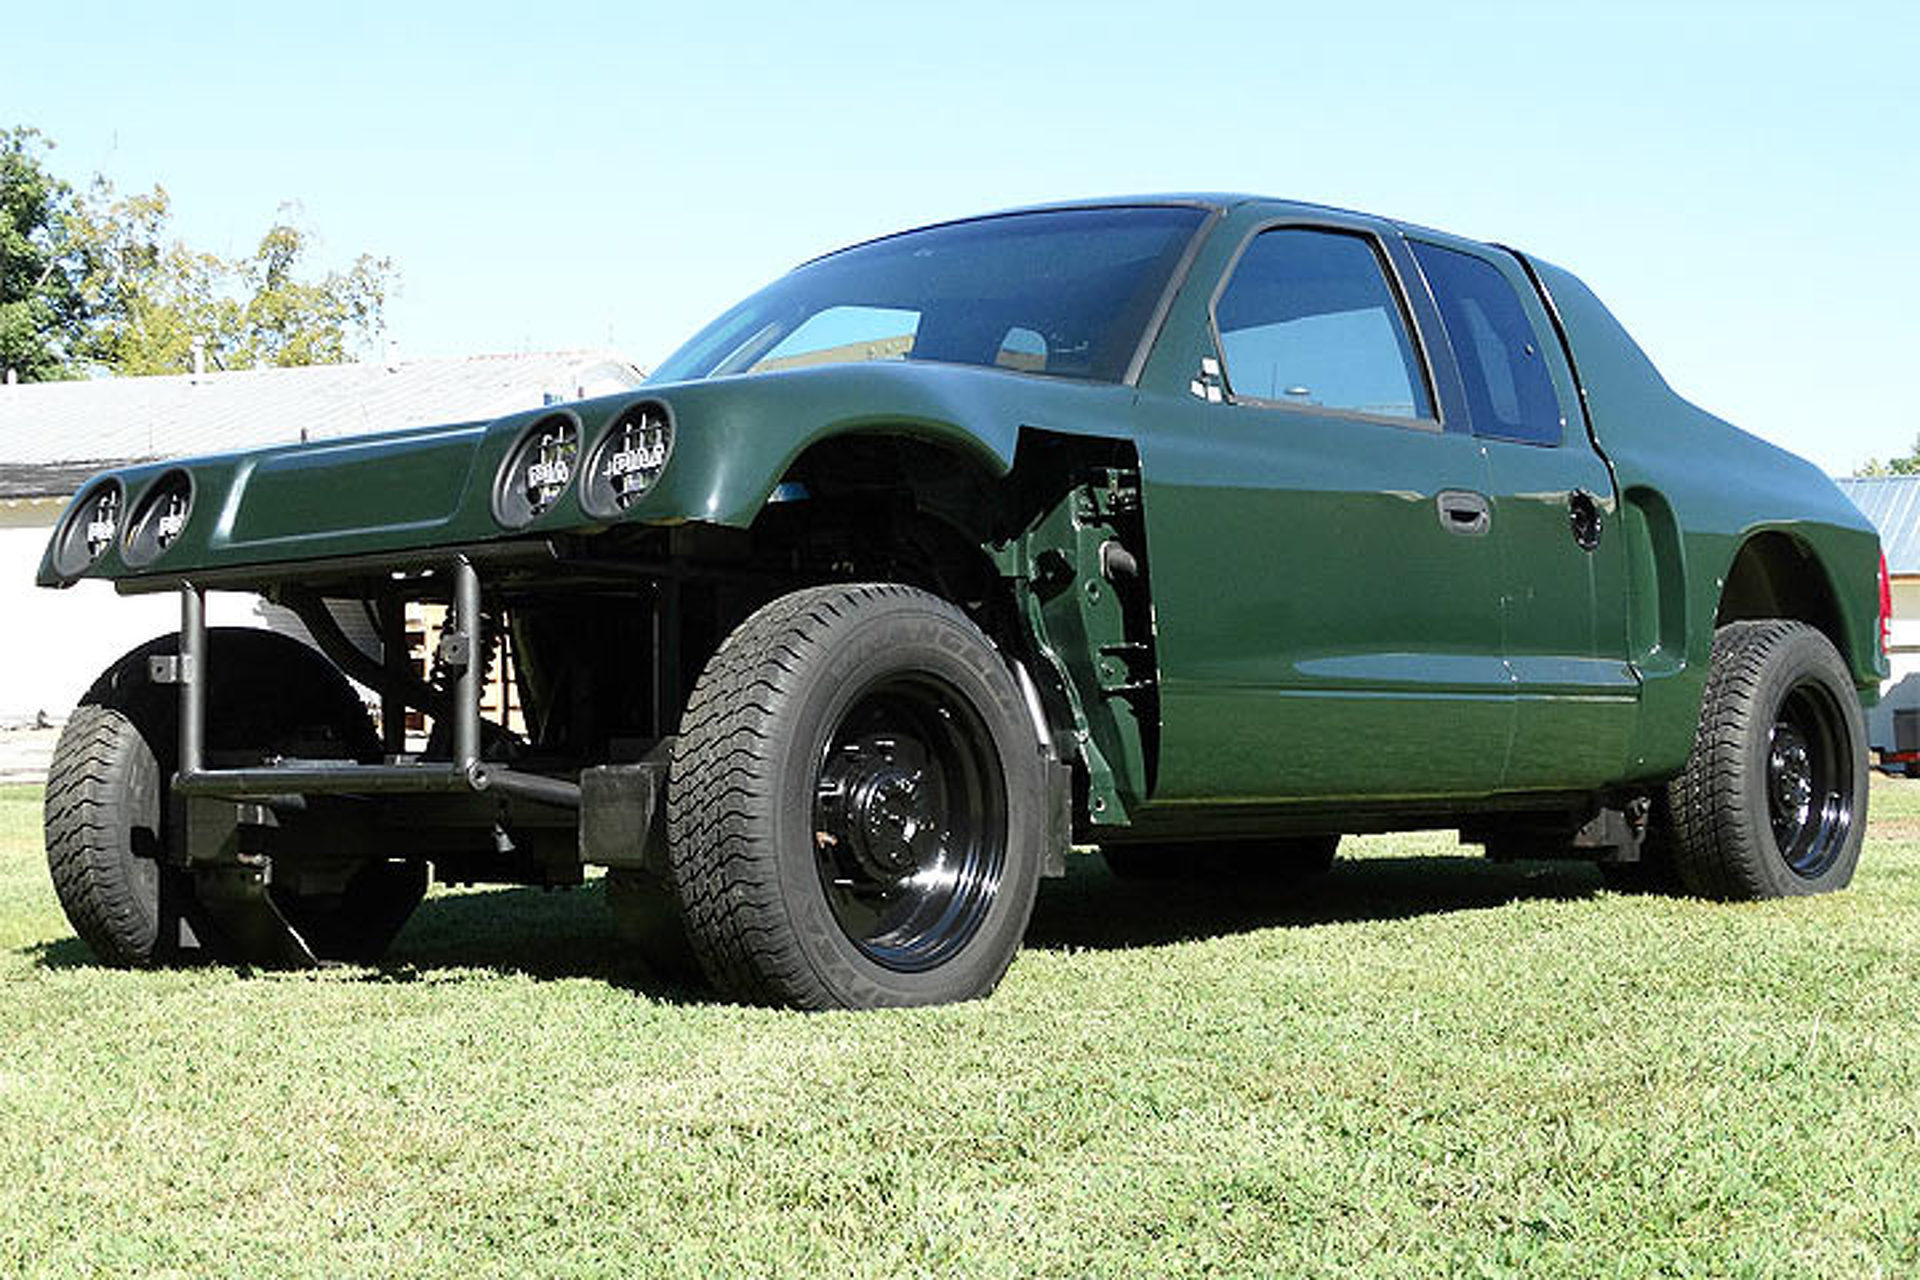 This Million Dollar Military Vehicle is an eBay Surprise